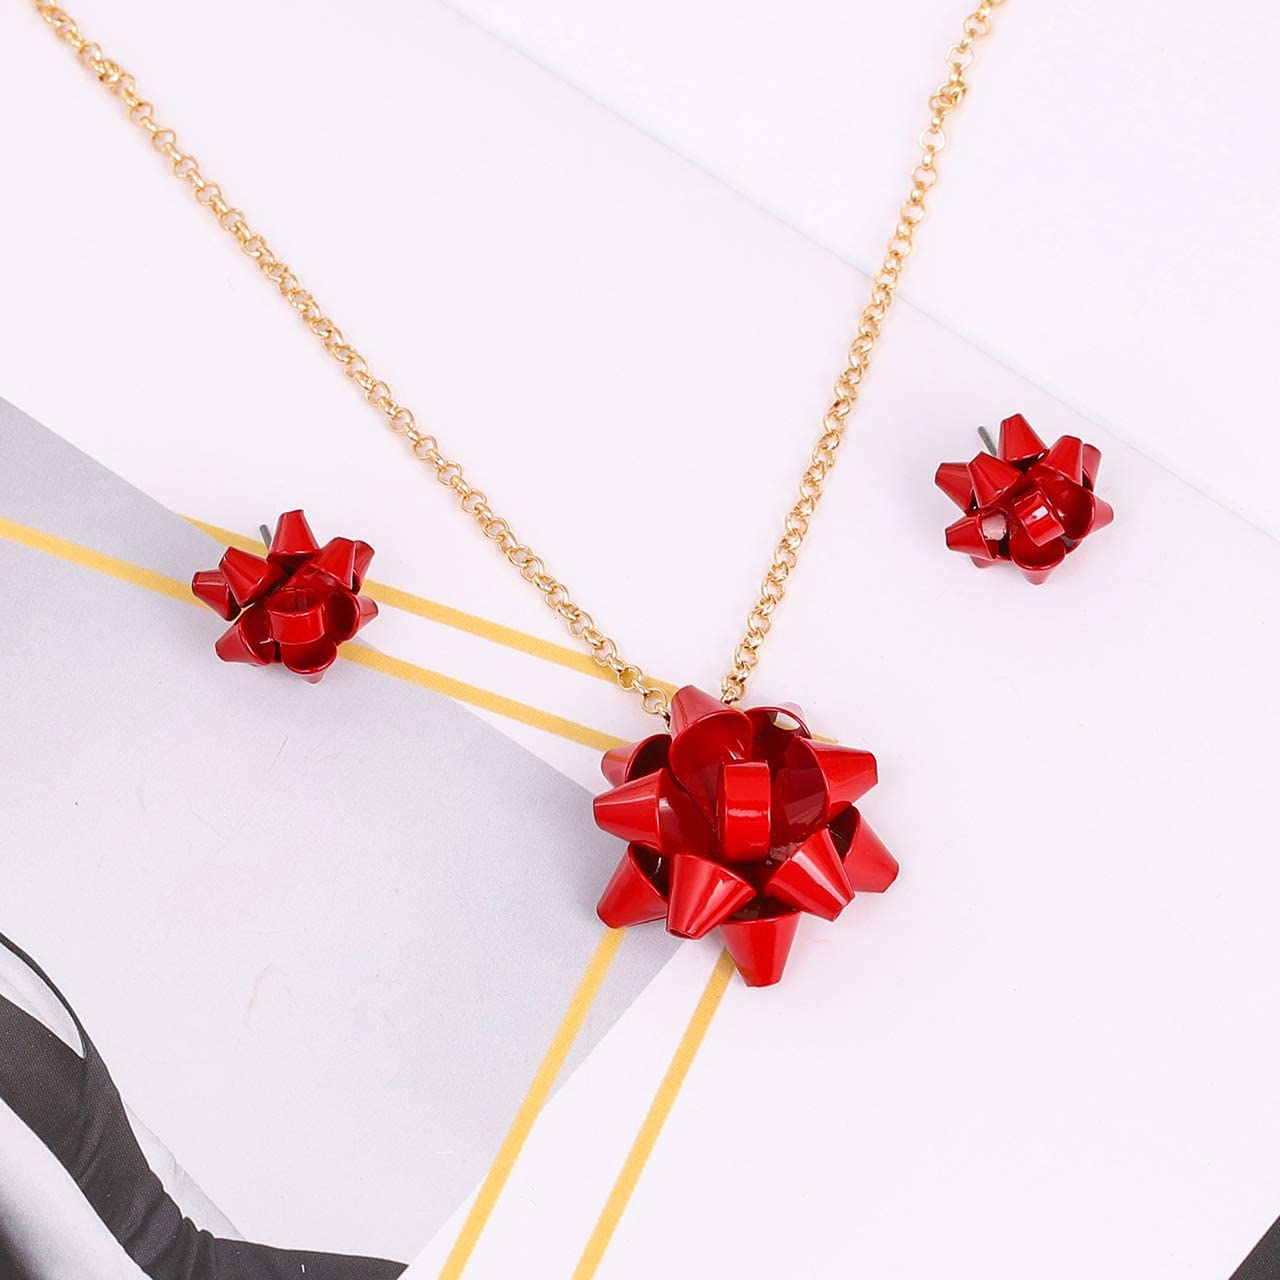 MOLOCH Christmas Necklace Earring Set Statement Gift Bow Pendant Necklace Post Stud Earring Set Christmas Jewelry Gifts for Women Girls